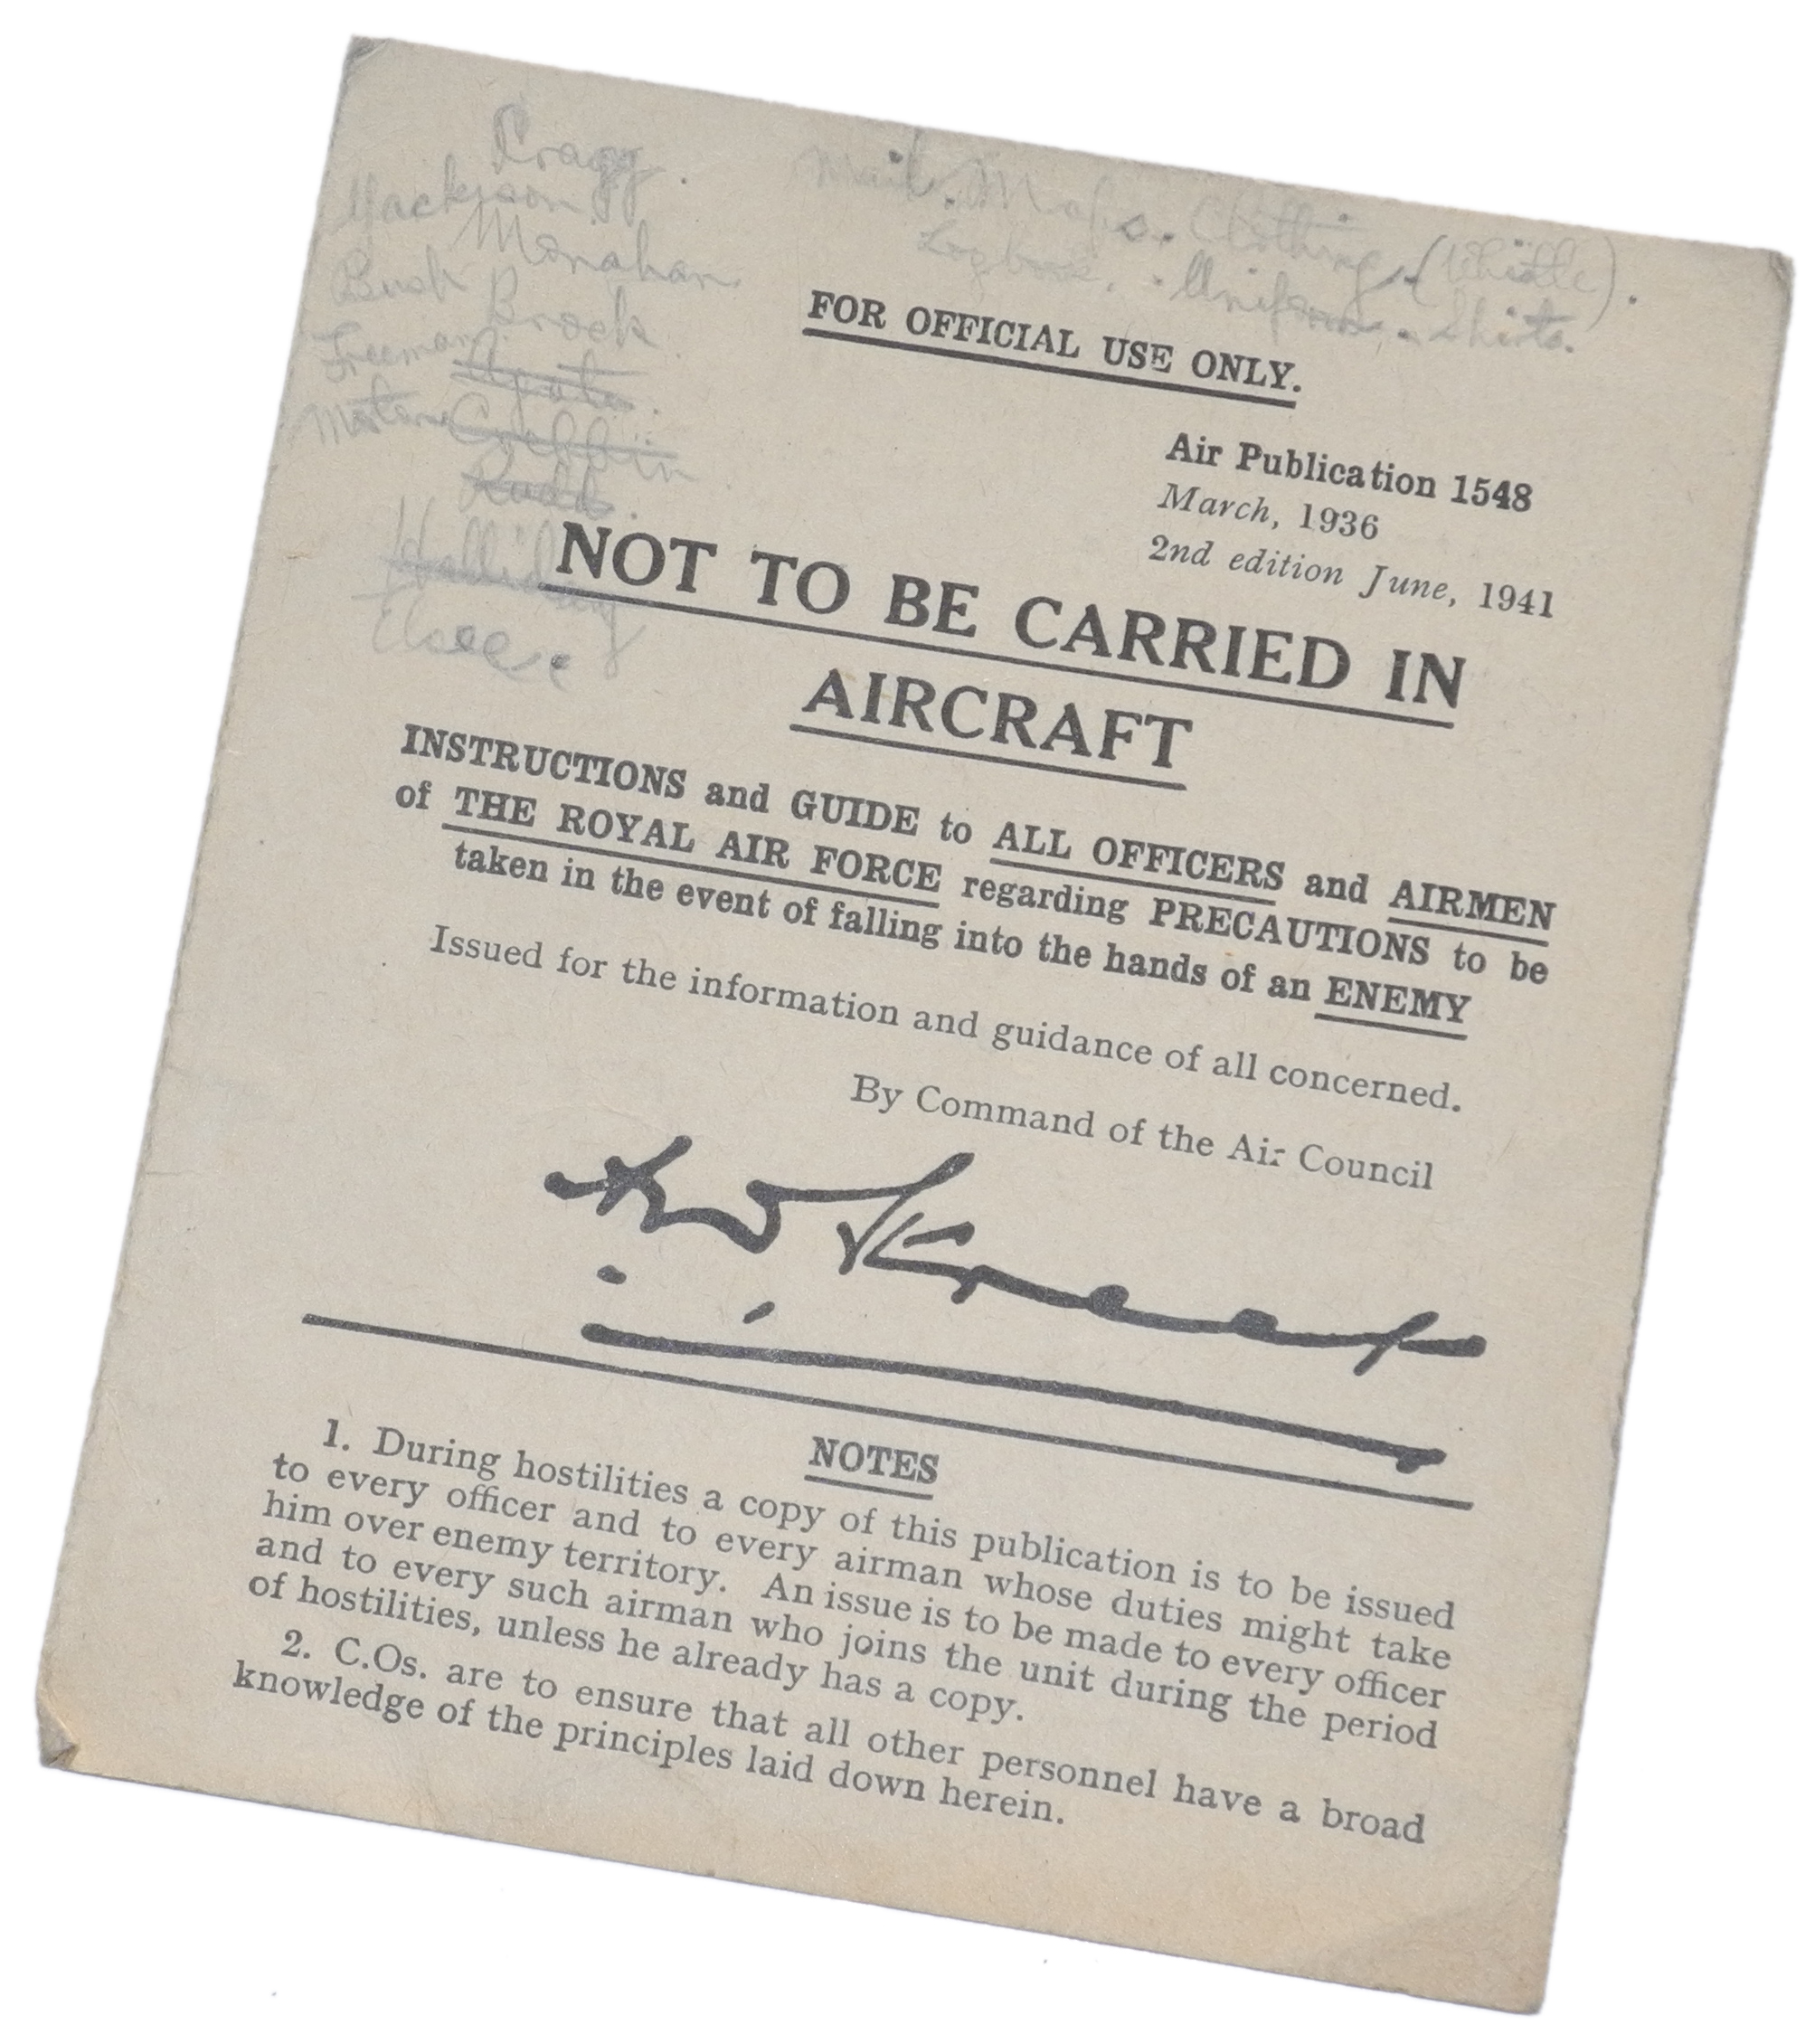 RAF capture instructions AP1548